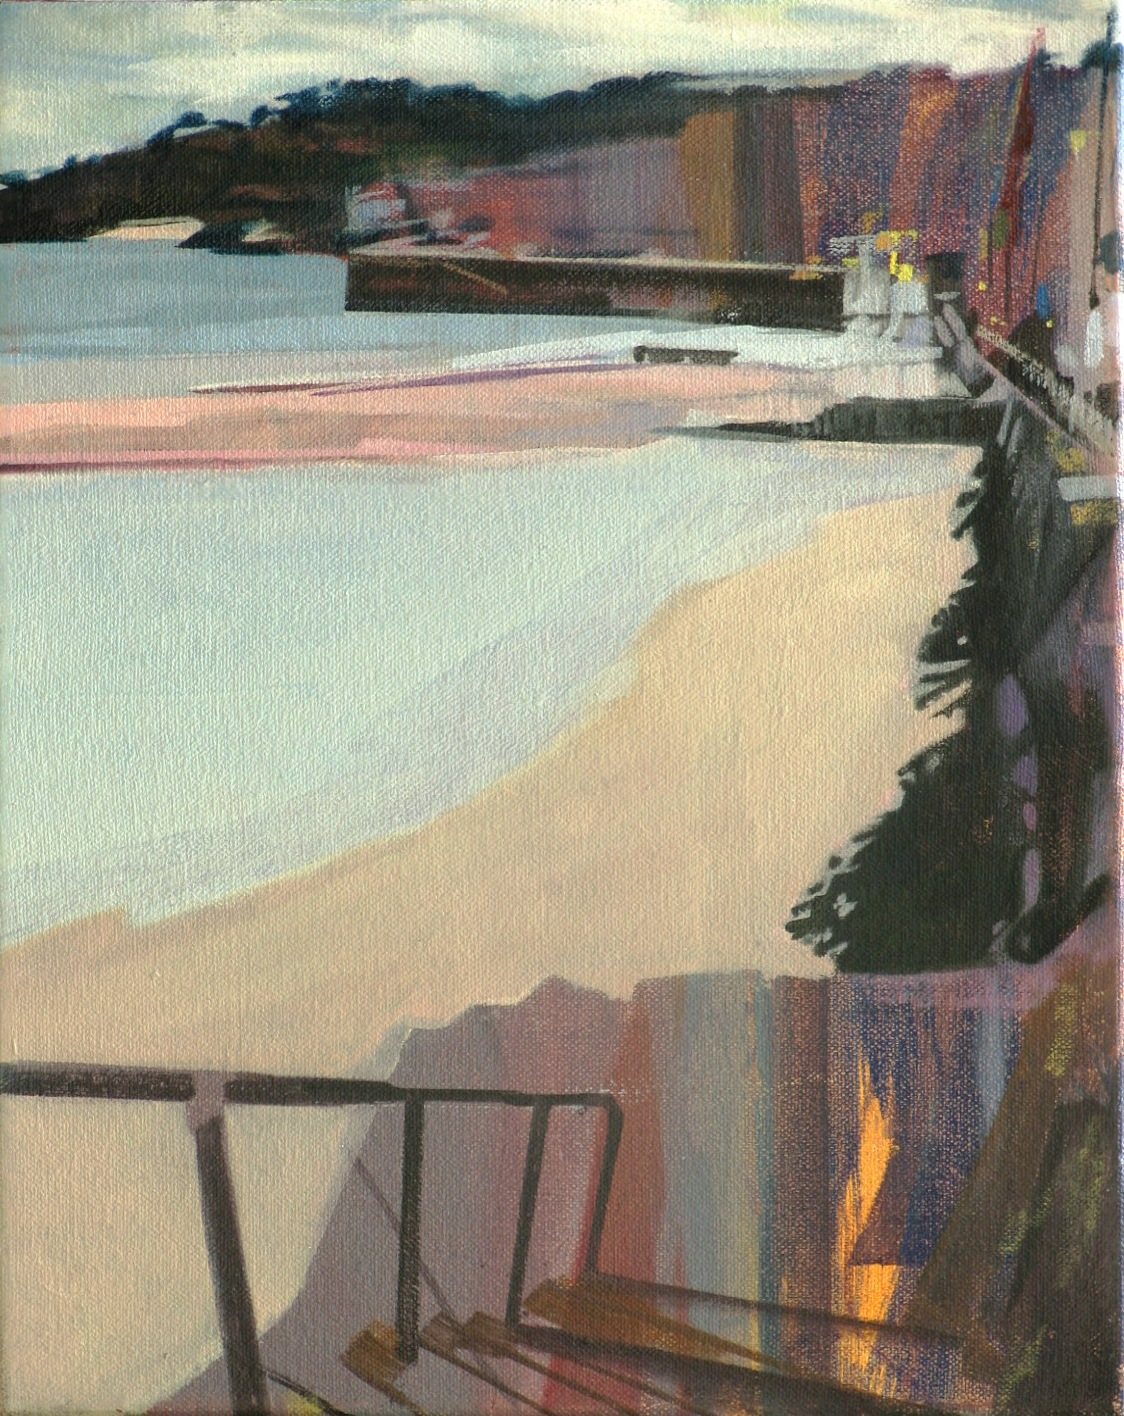 St Ives, 2009, oil on canvas, 12 x 10in.